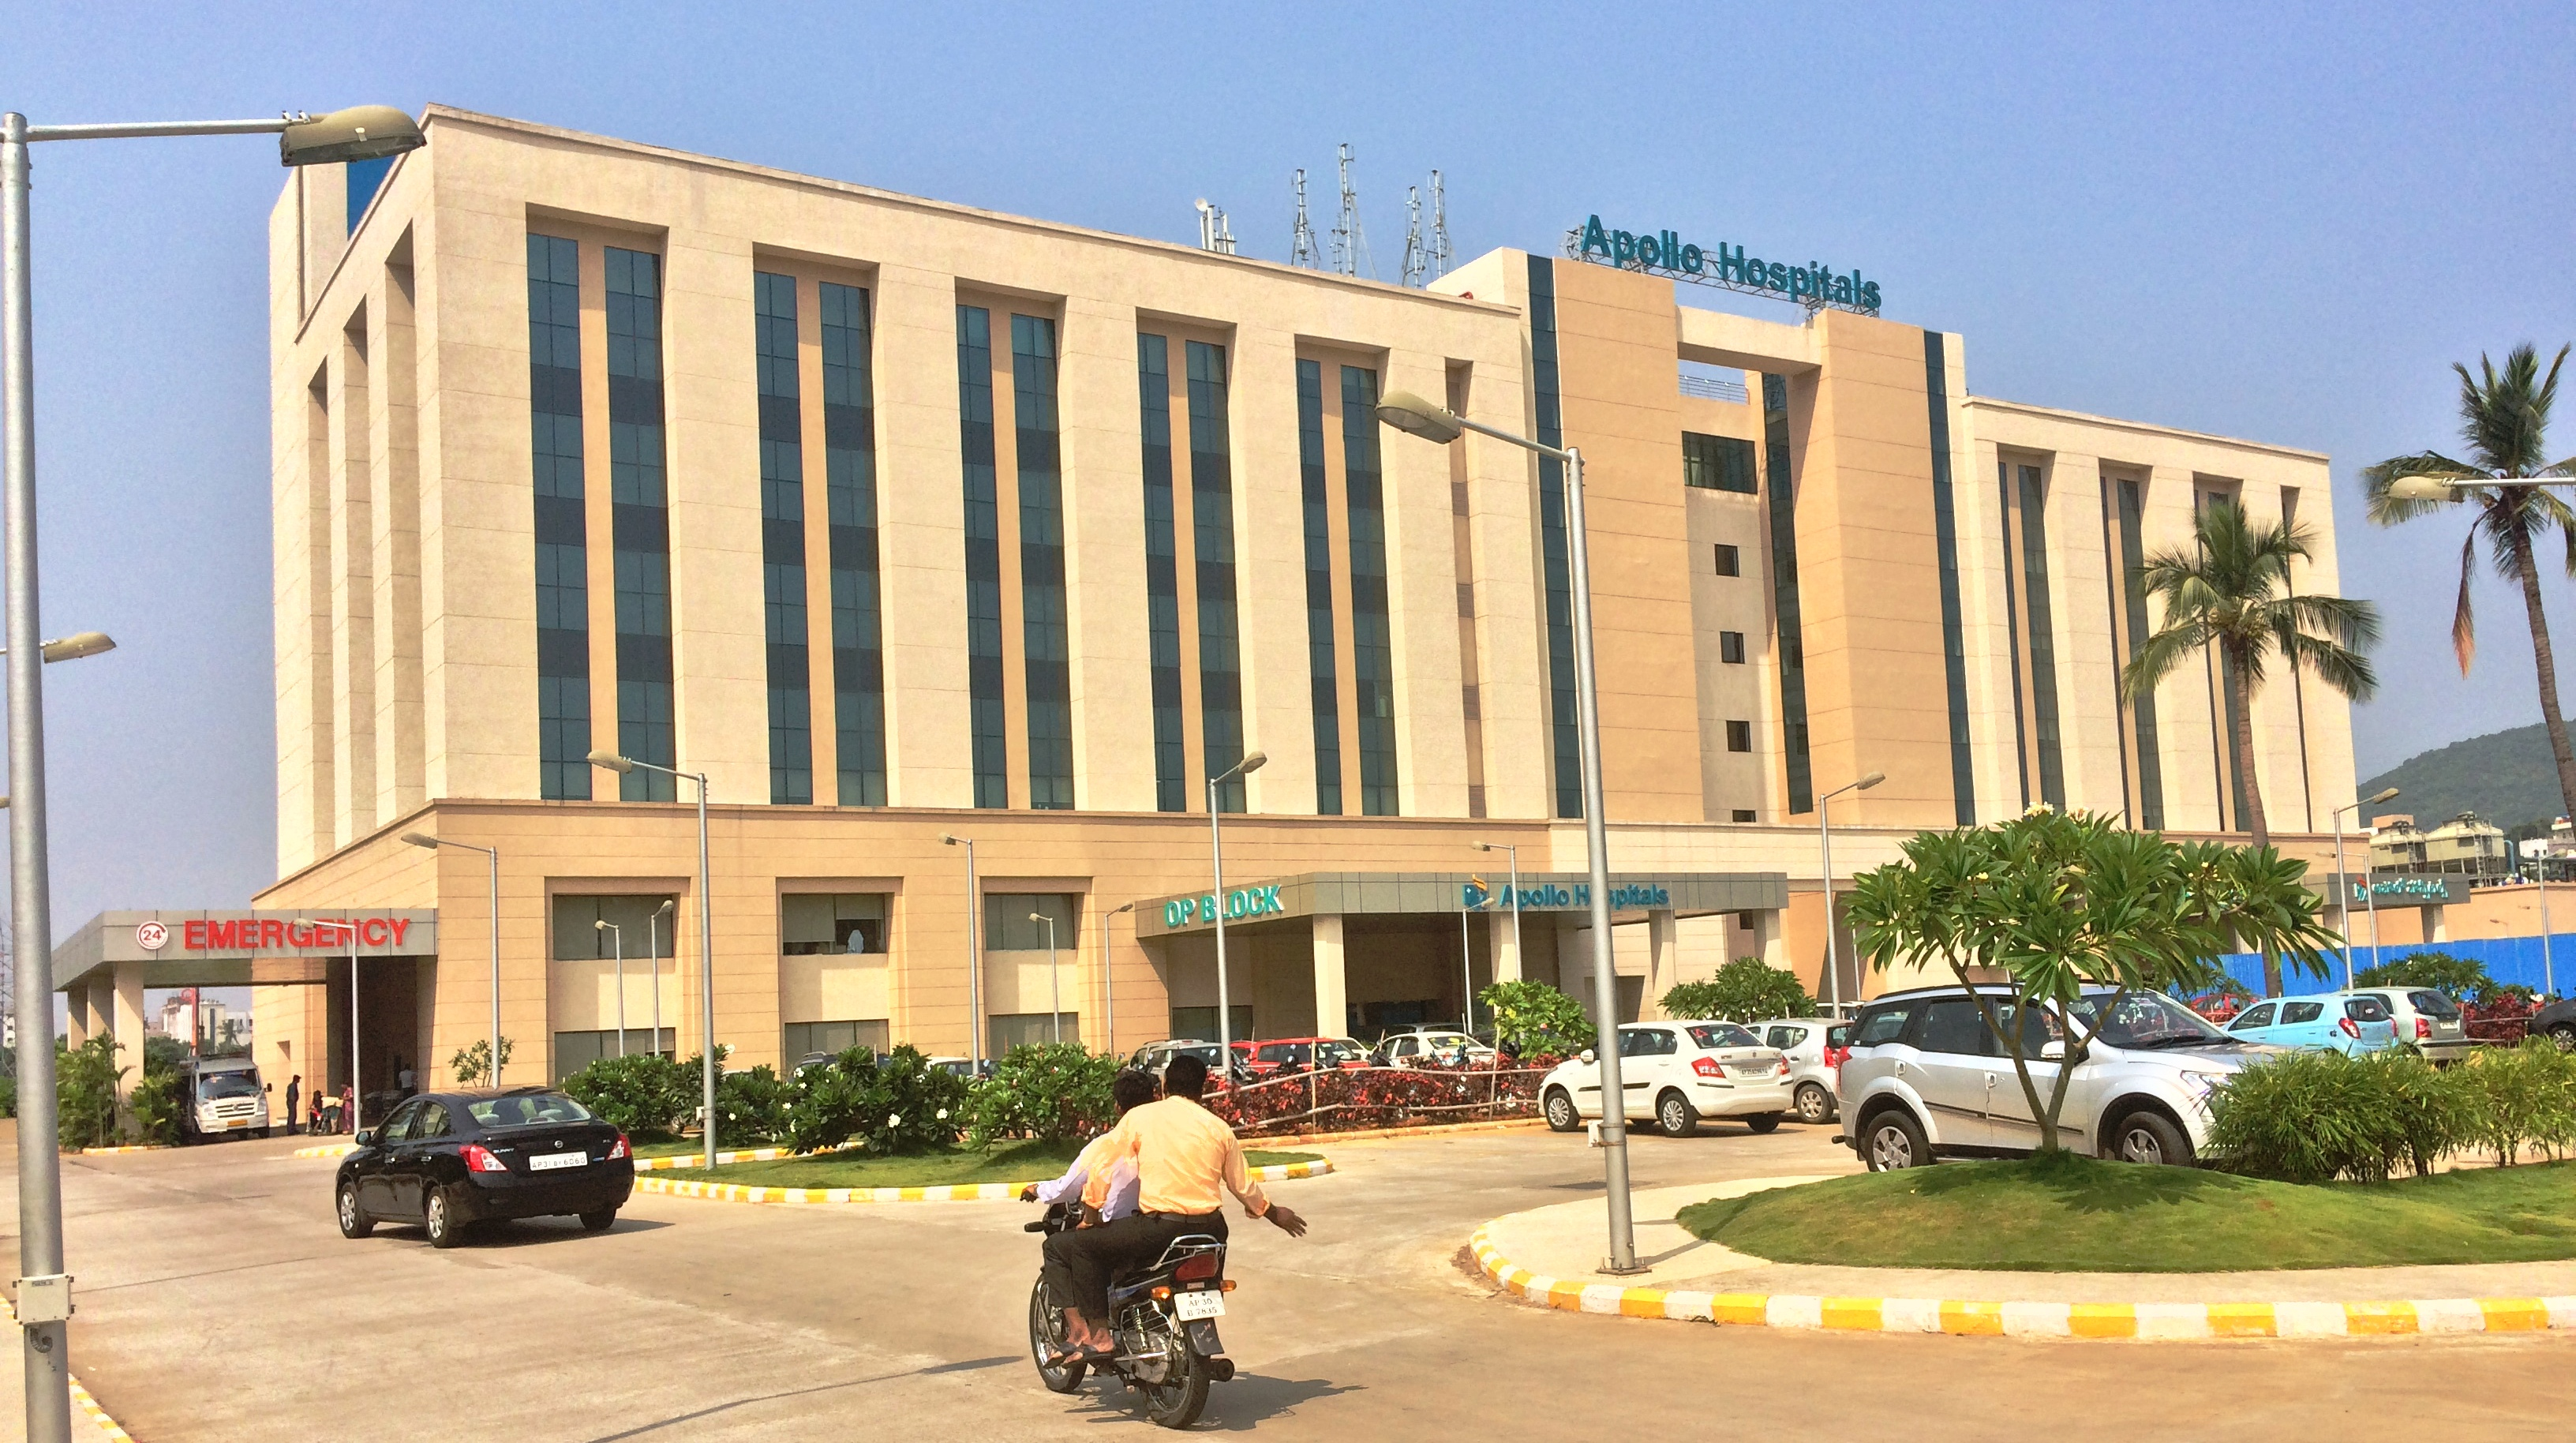 Jayalalithaa death probe: Apollo Hospital chief says medical evaluation should be done by experts